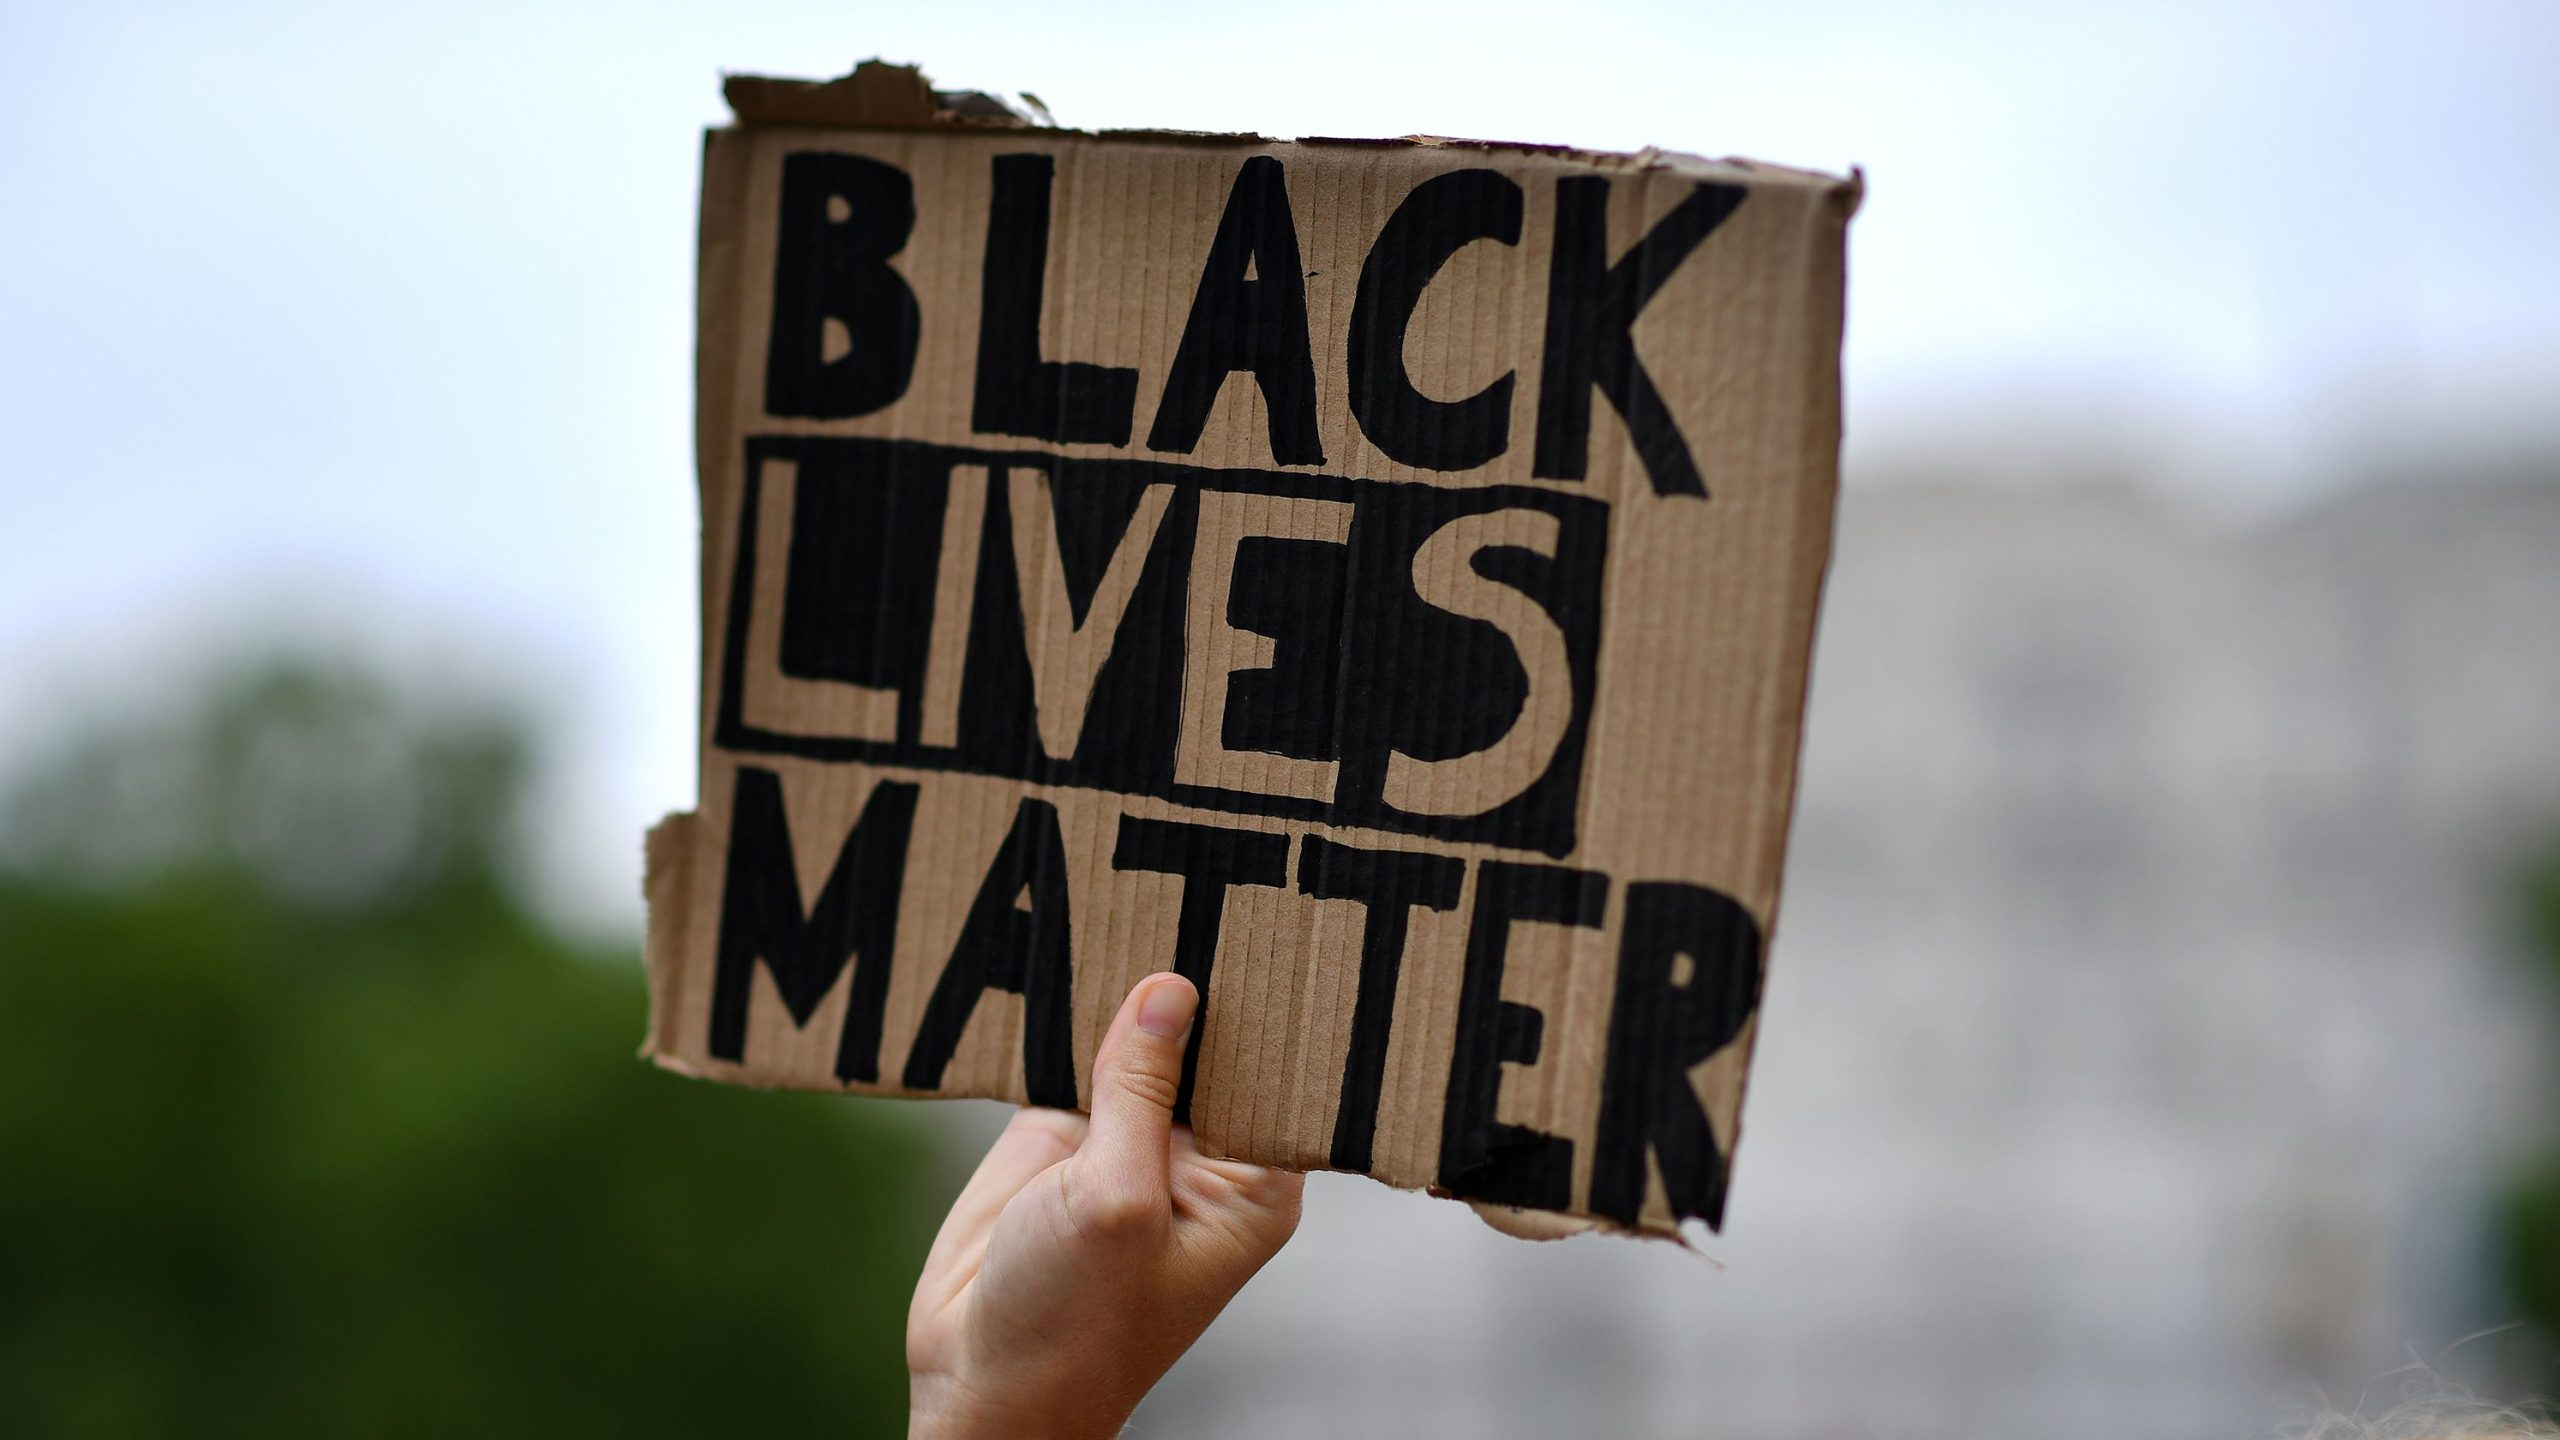 Picture of hand holding Black Lives Matter sign